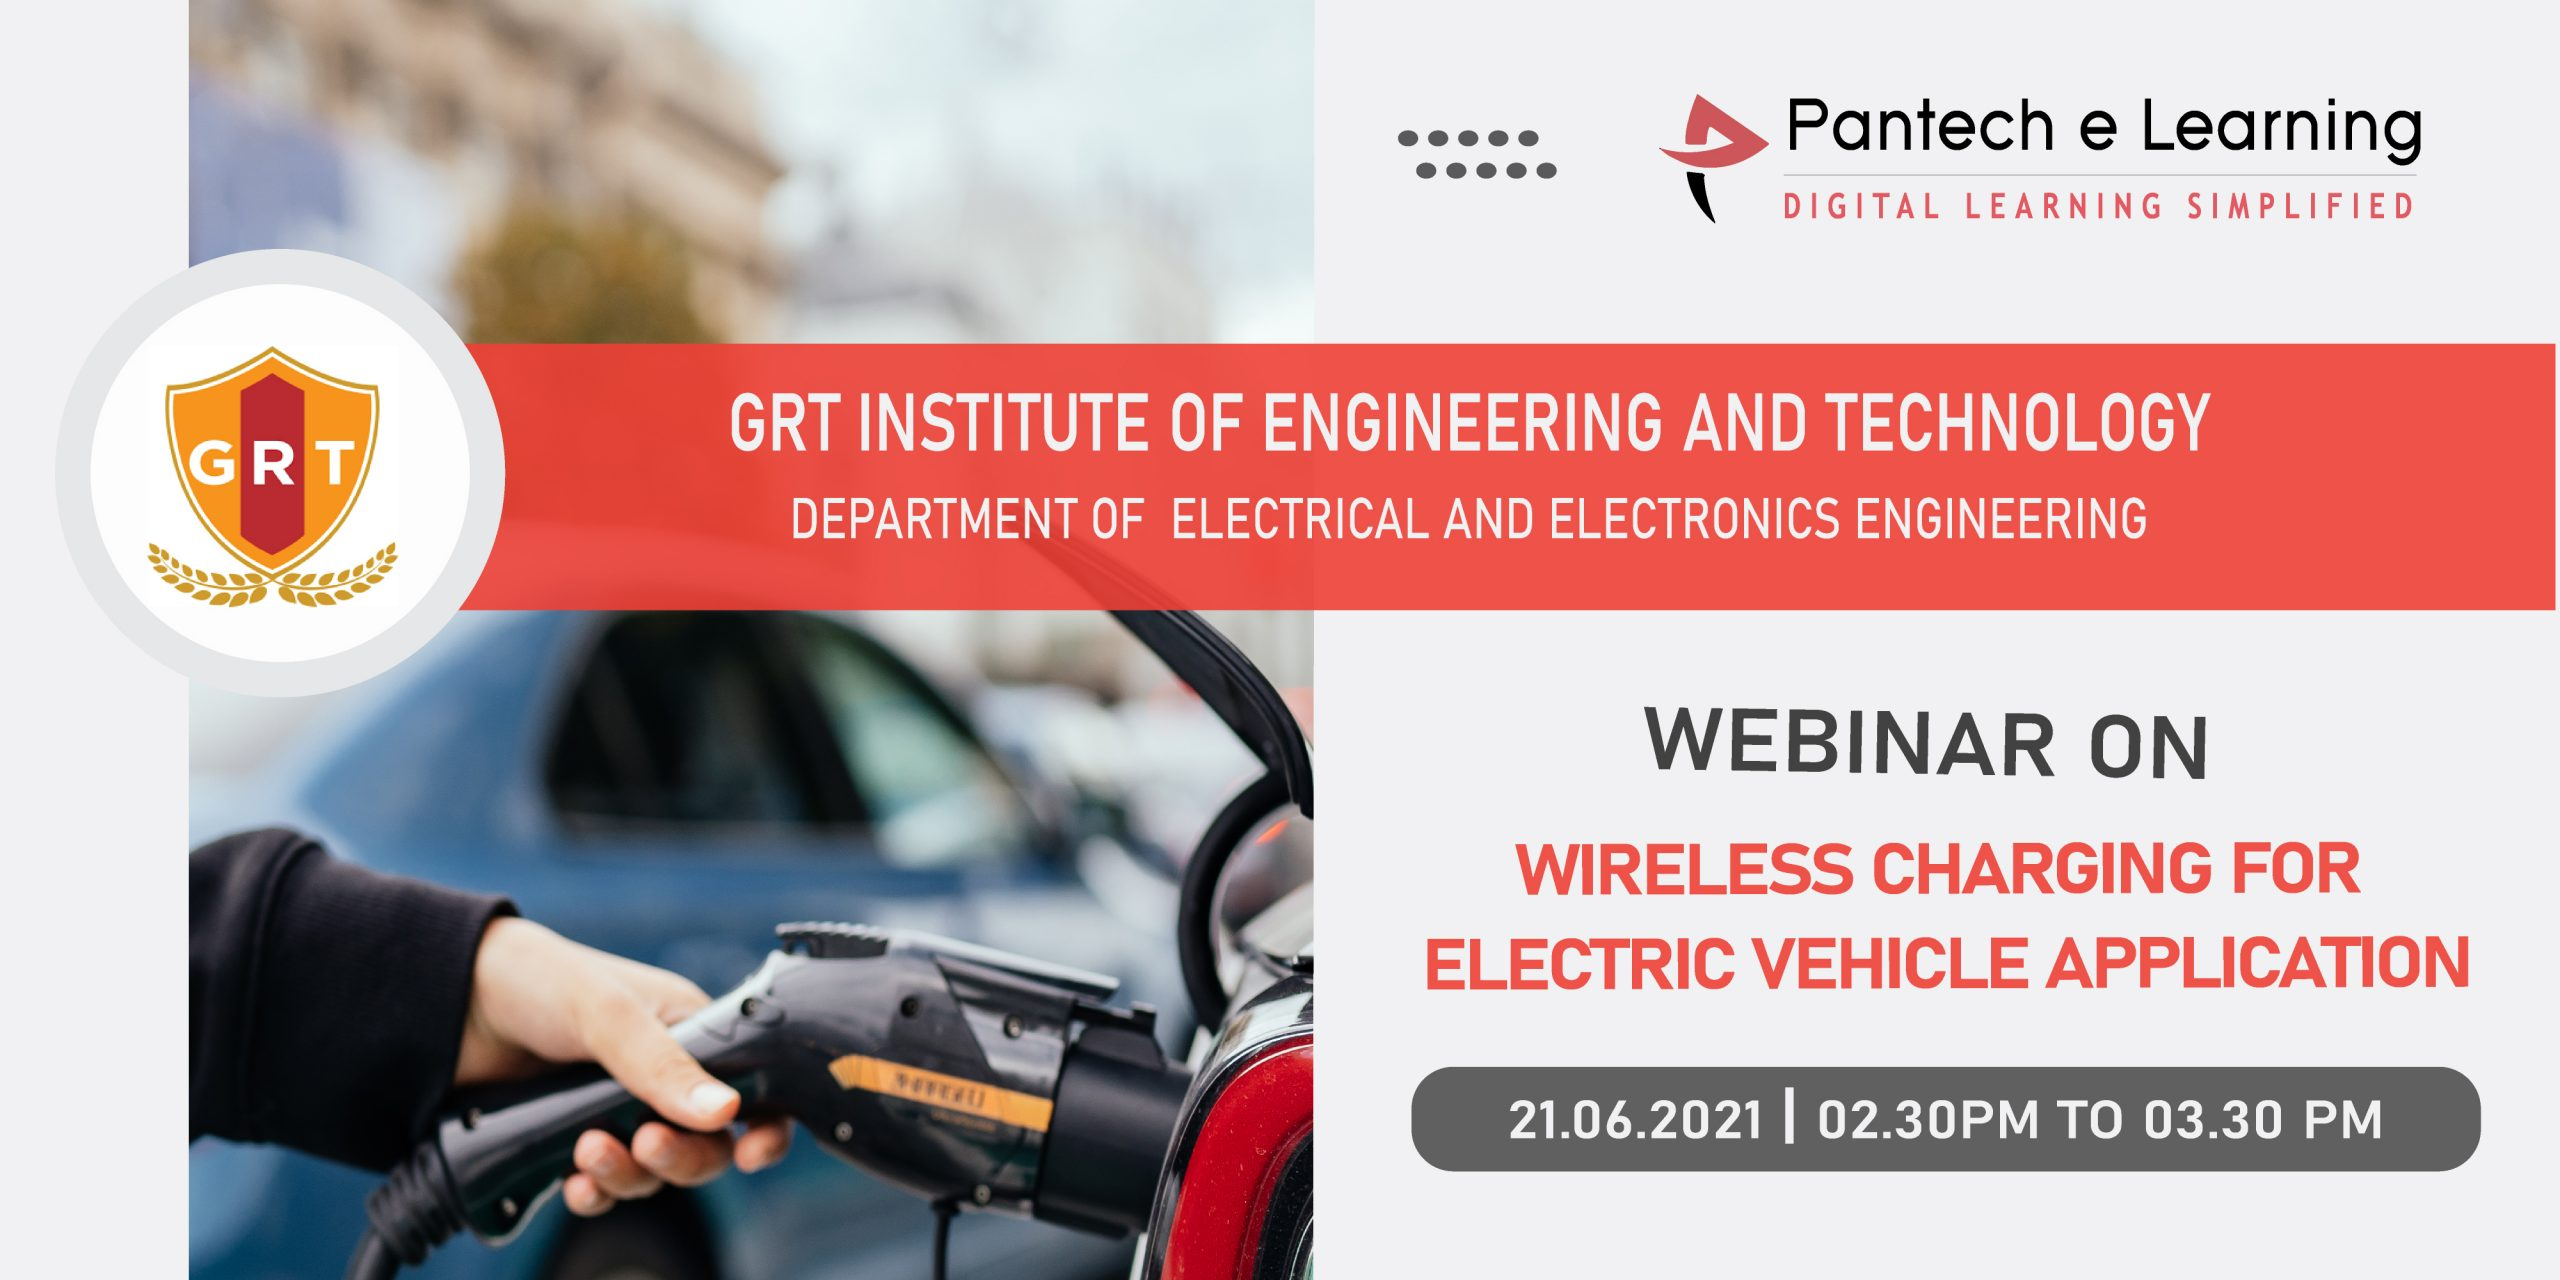 Wireless charging for EV GRT institute Pantech e Learning